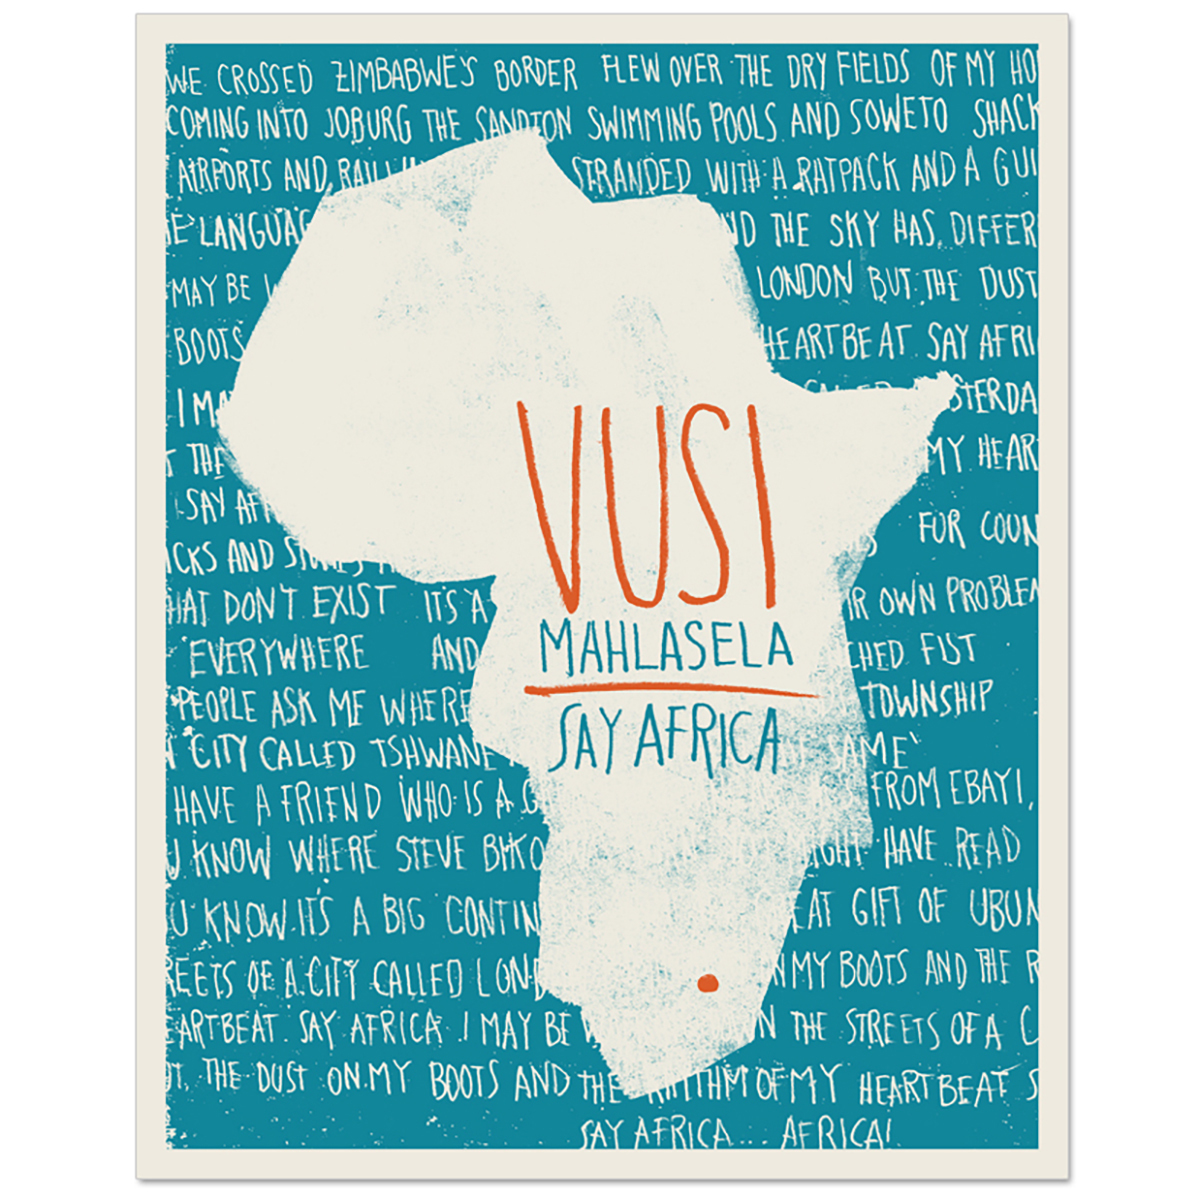 Limited Edition SAY AFRICA Silk Screened Poster